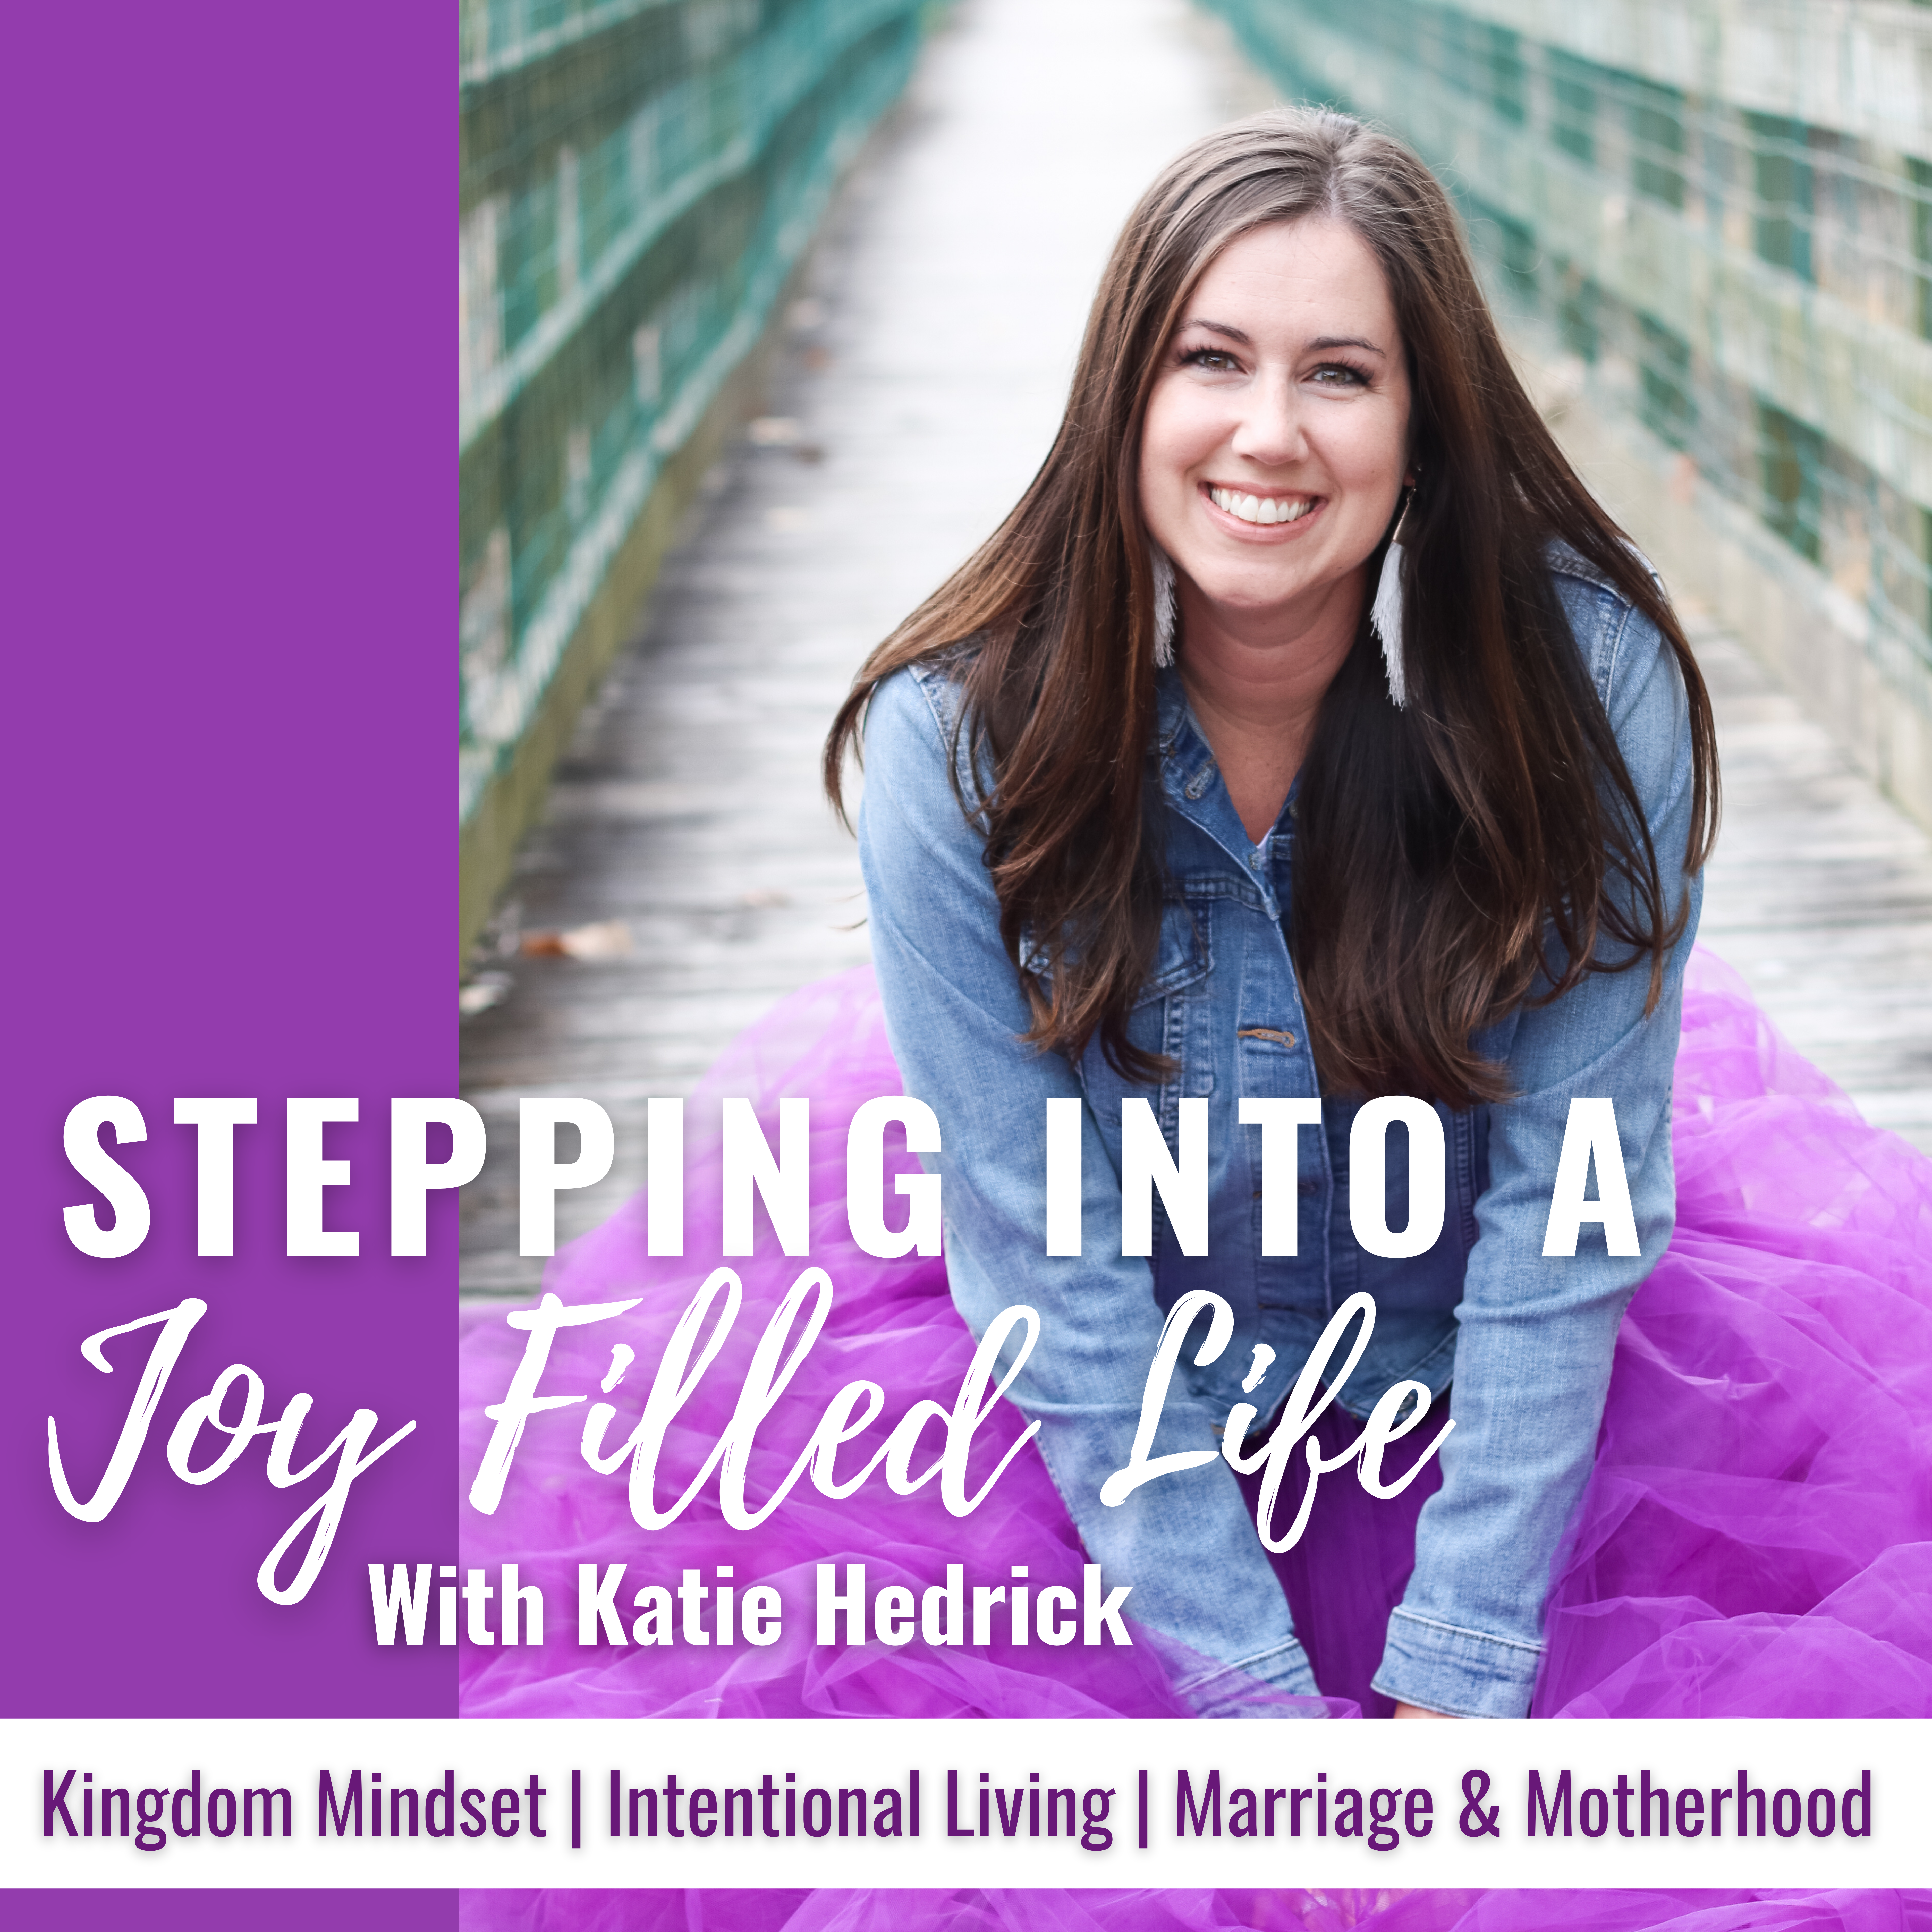 Stepping into a Joy Filled Life™ | Christian Mom, Christian Wife, Christian Woman, Faith, Mindset, Kingdom Mindset, Intentional Living, Personal Growth, Christian Personal Development, Christian Marriage, Parenting, Motherhood, Bible Study, Life Coach